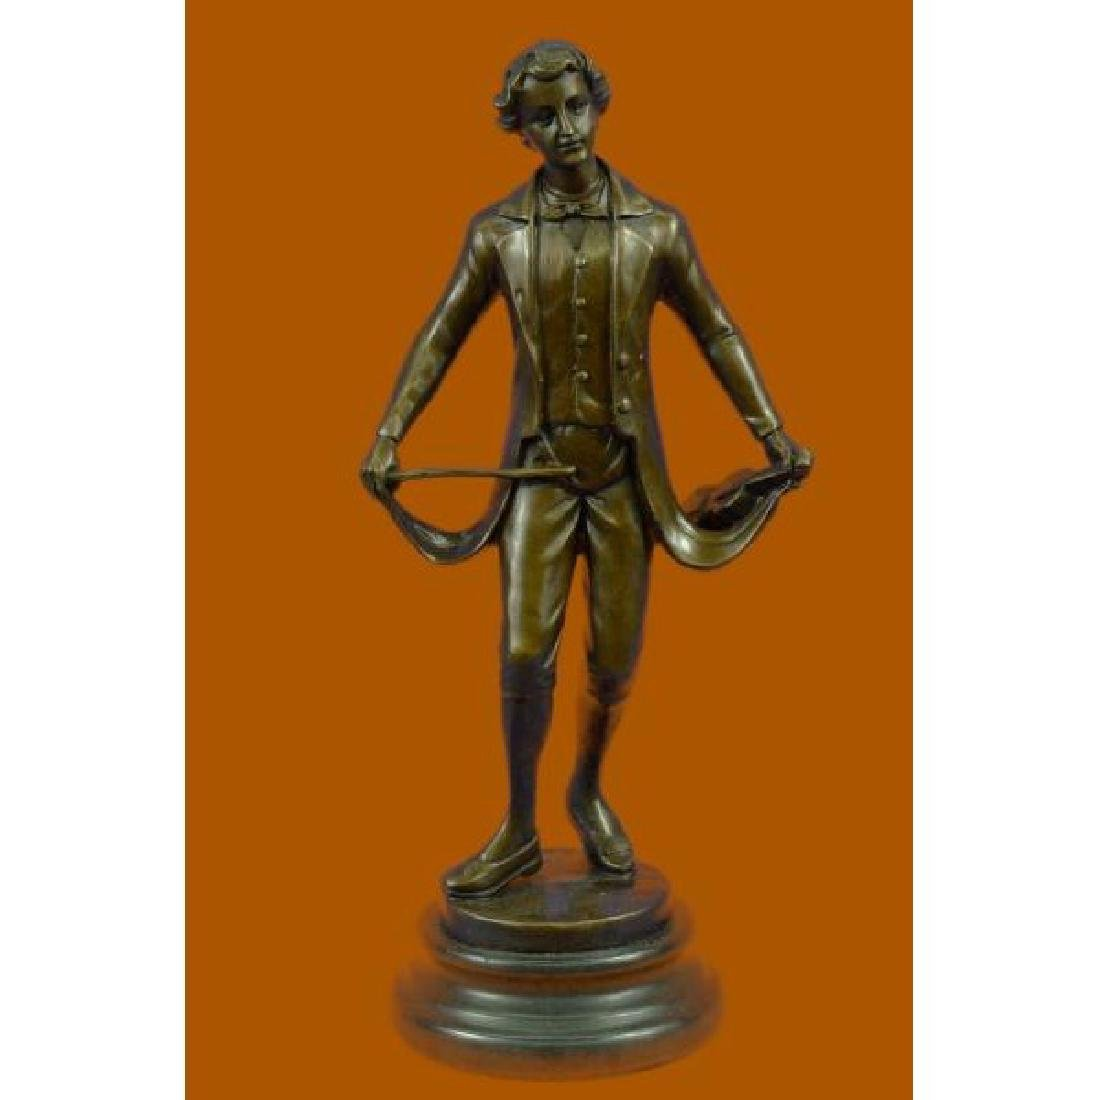 Taking a Bow by Besserdich Bronze Sculpture Marble Base